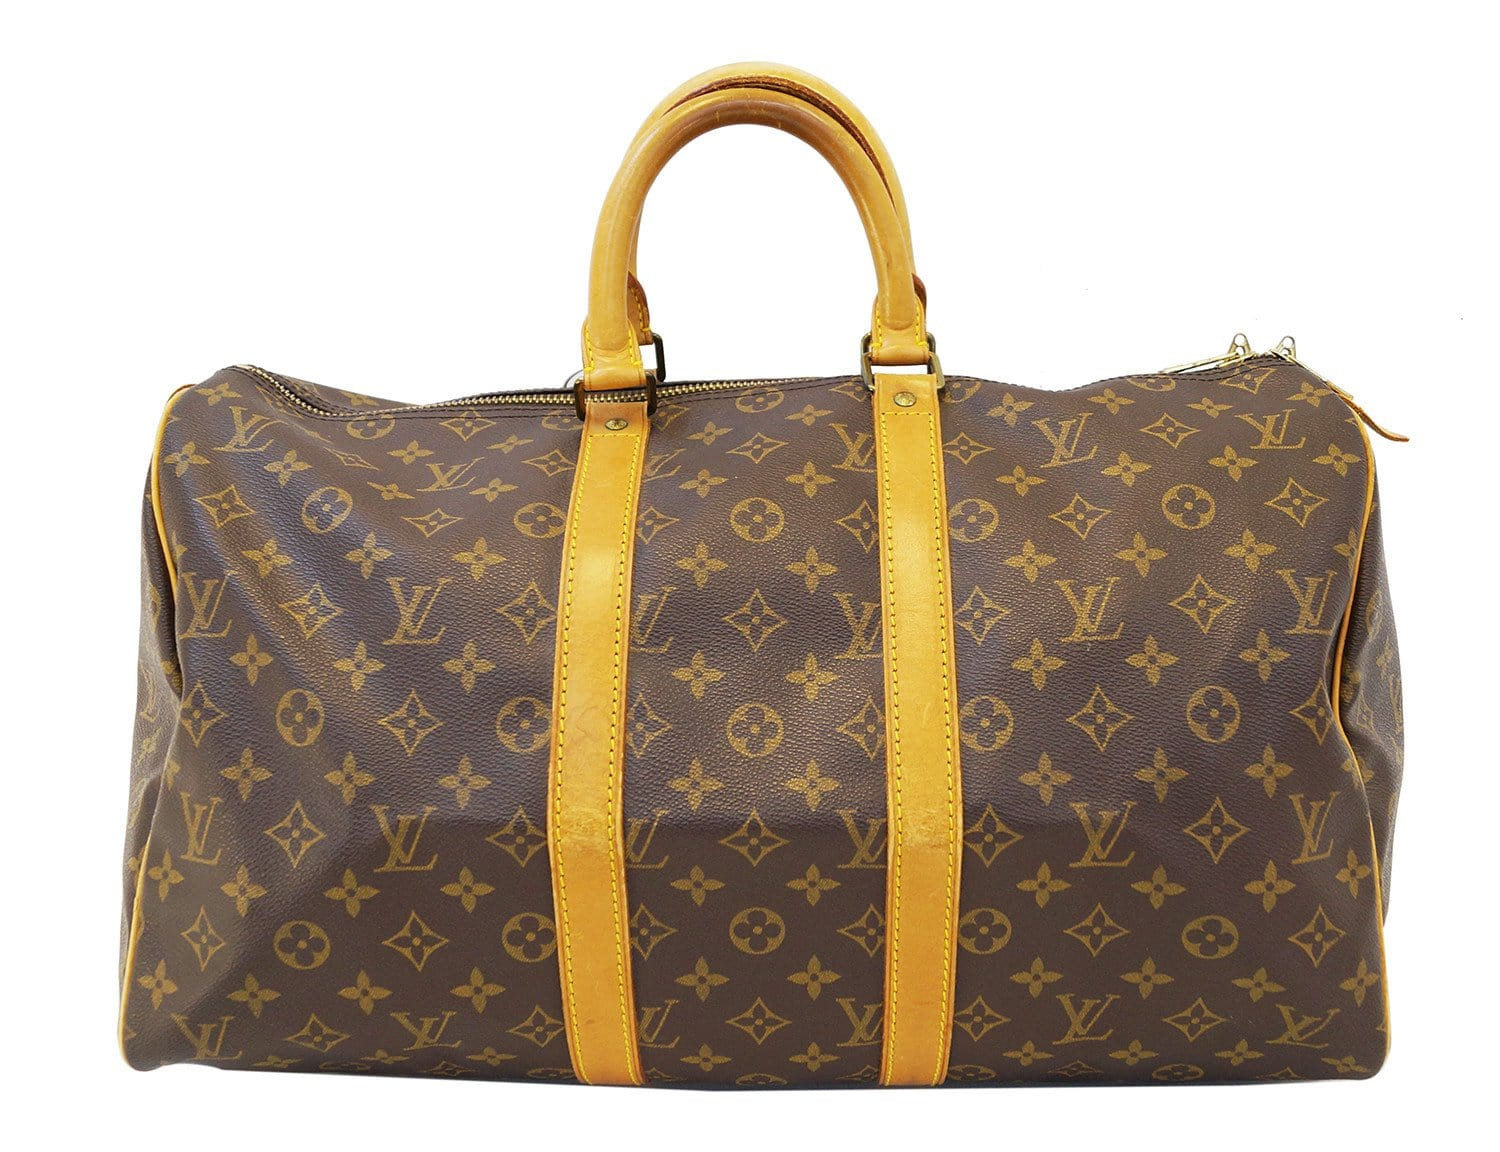 authentic louis vuitton keepall 45 monogram duffle travel bag vintage. Black Bedroom Furniture Sets. Home Design Ideas